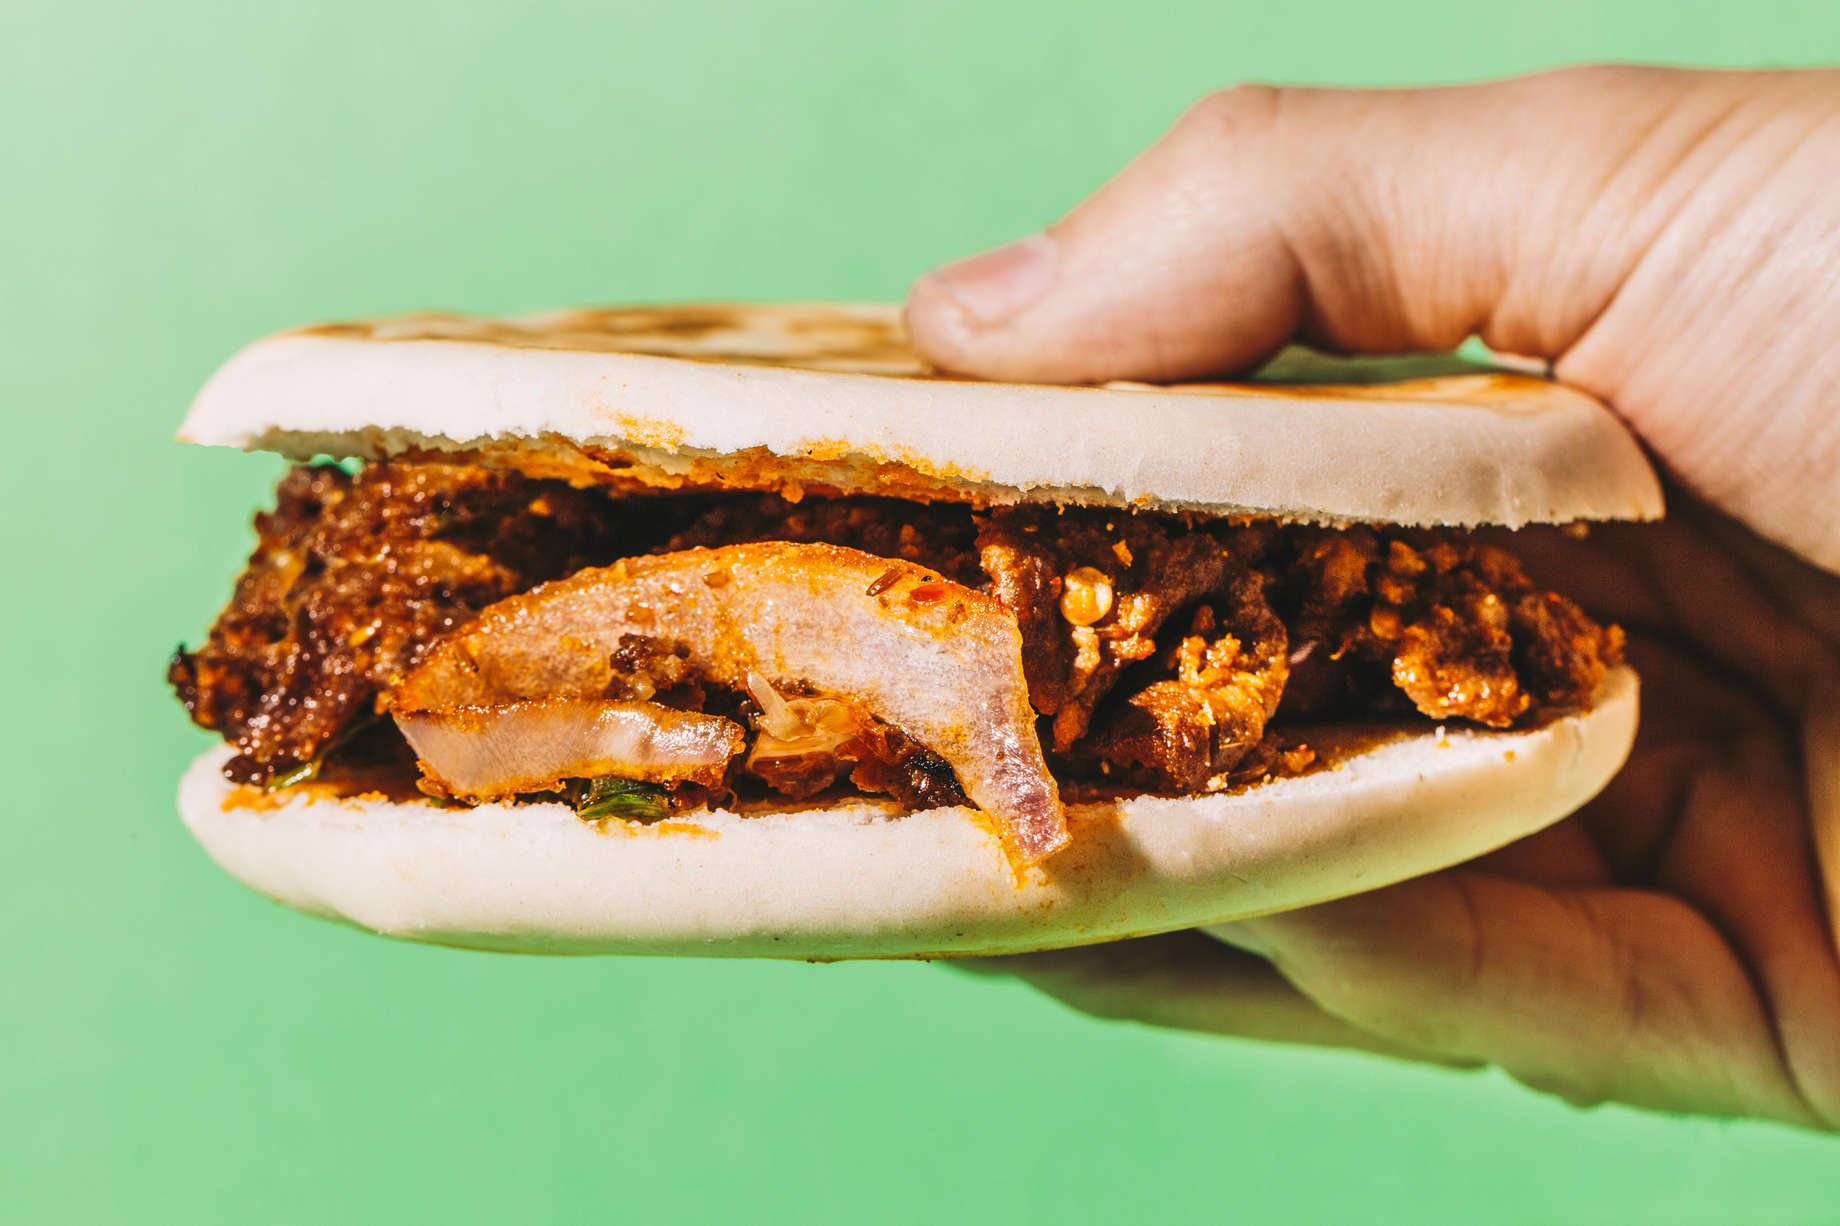 Best Sandwiches Around the World: A Guide to 80 Types of